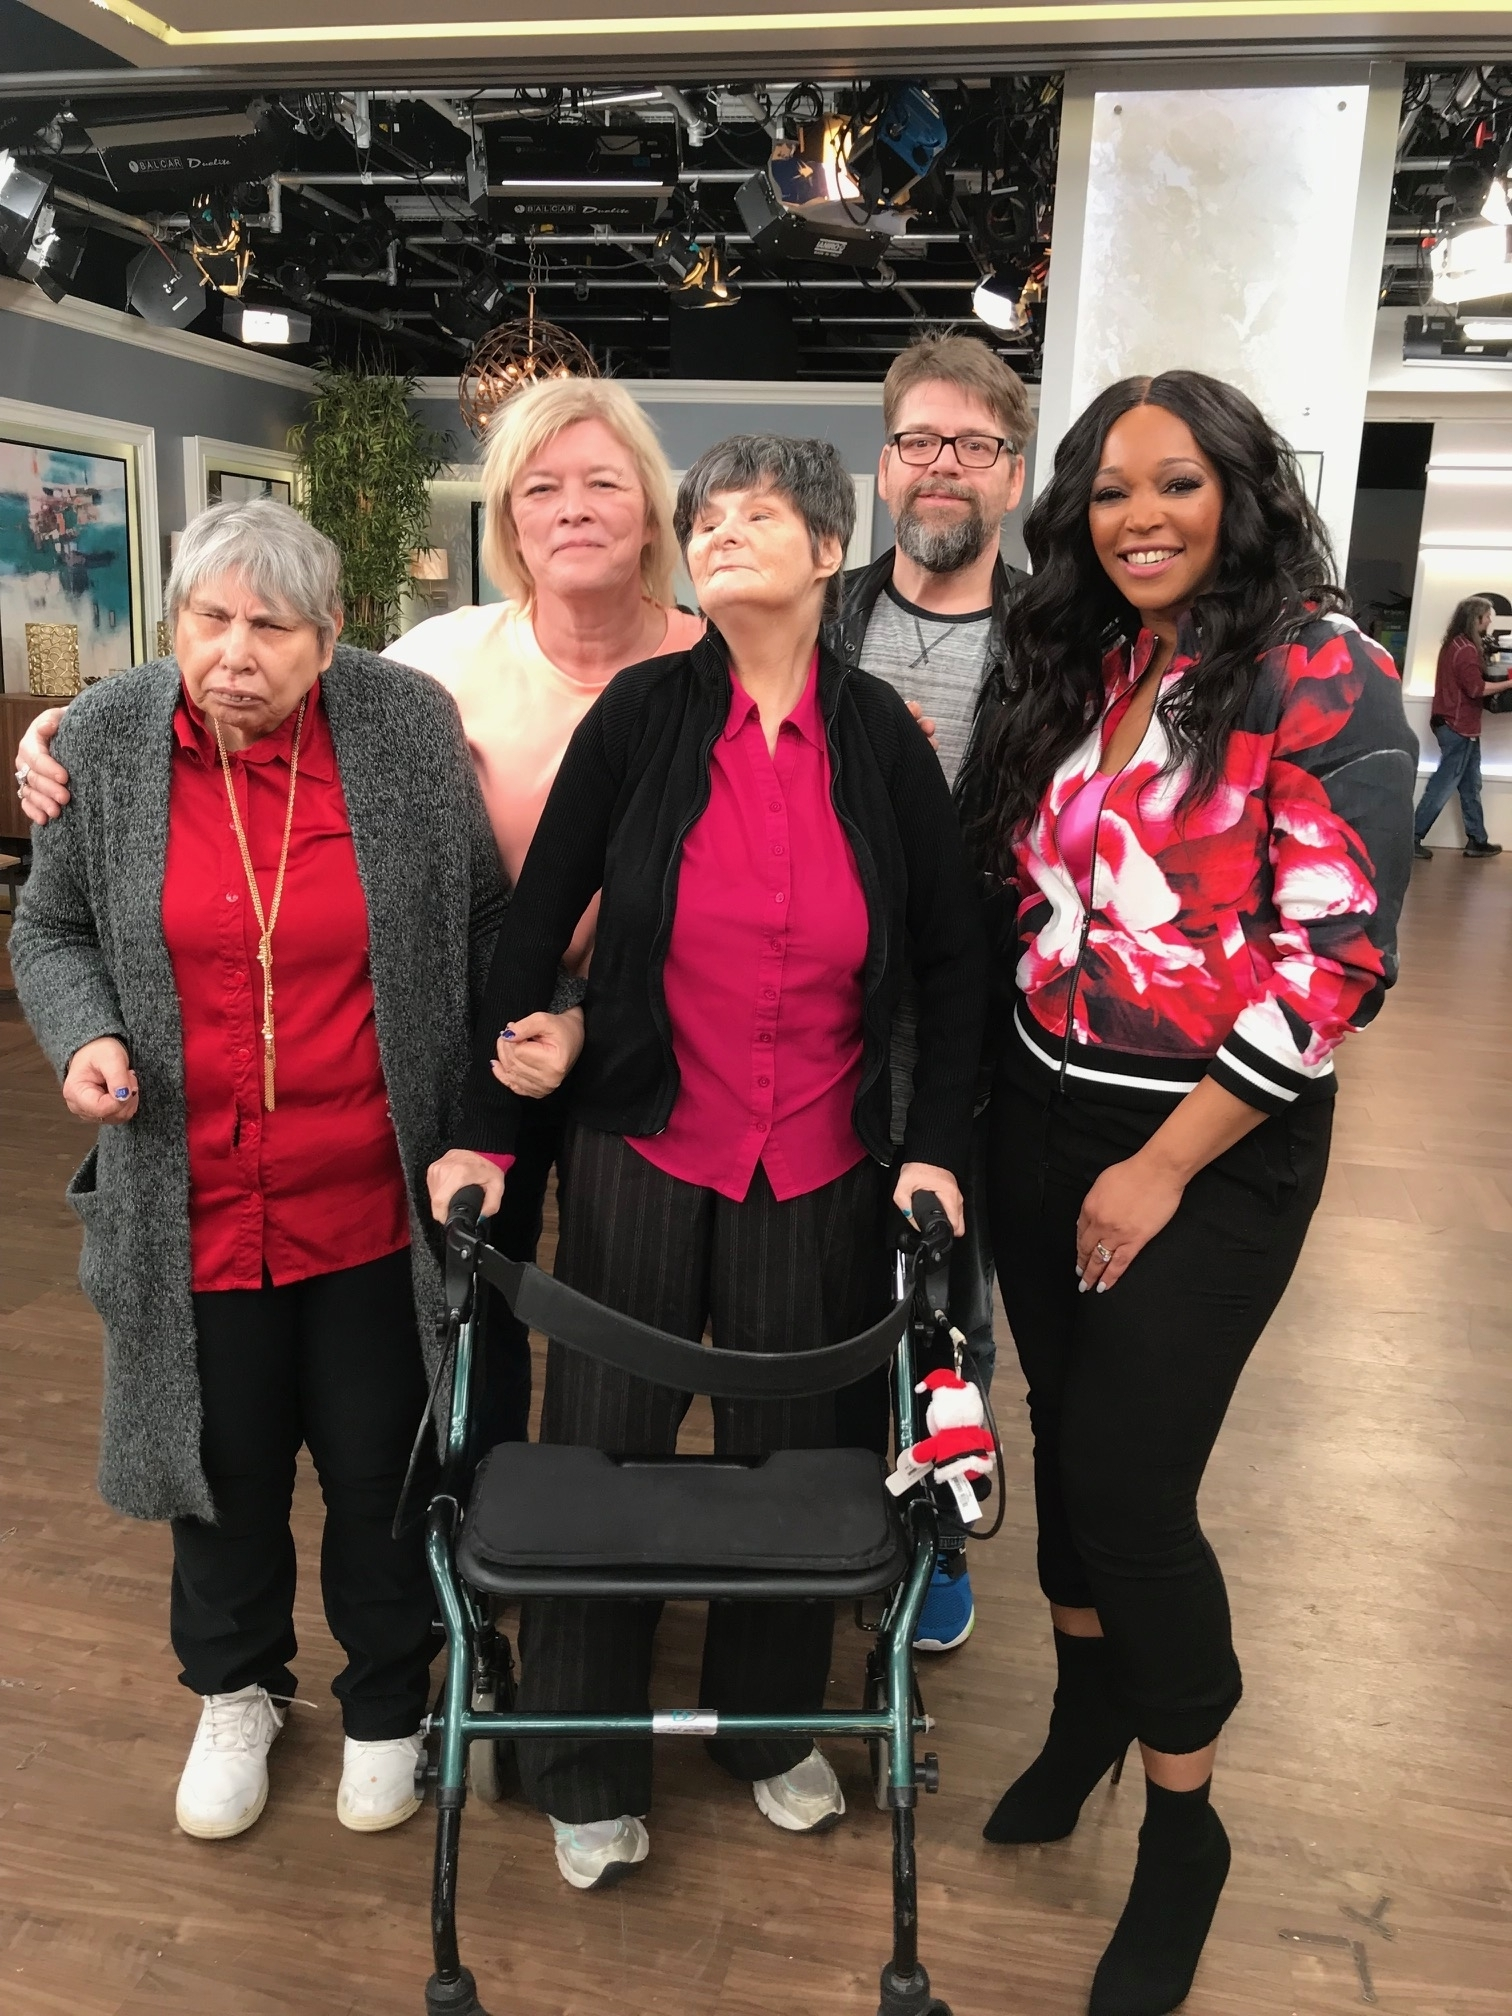 Yvonne and Susan at city line morning show Jan 2019